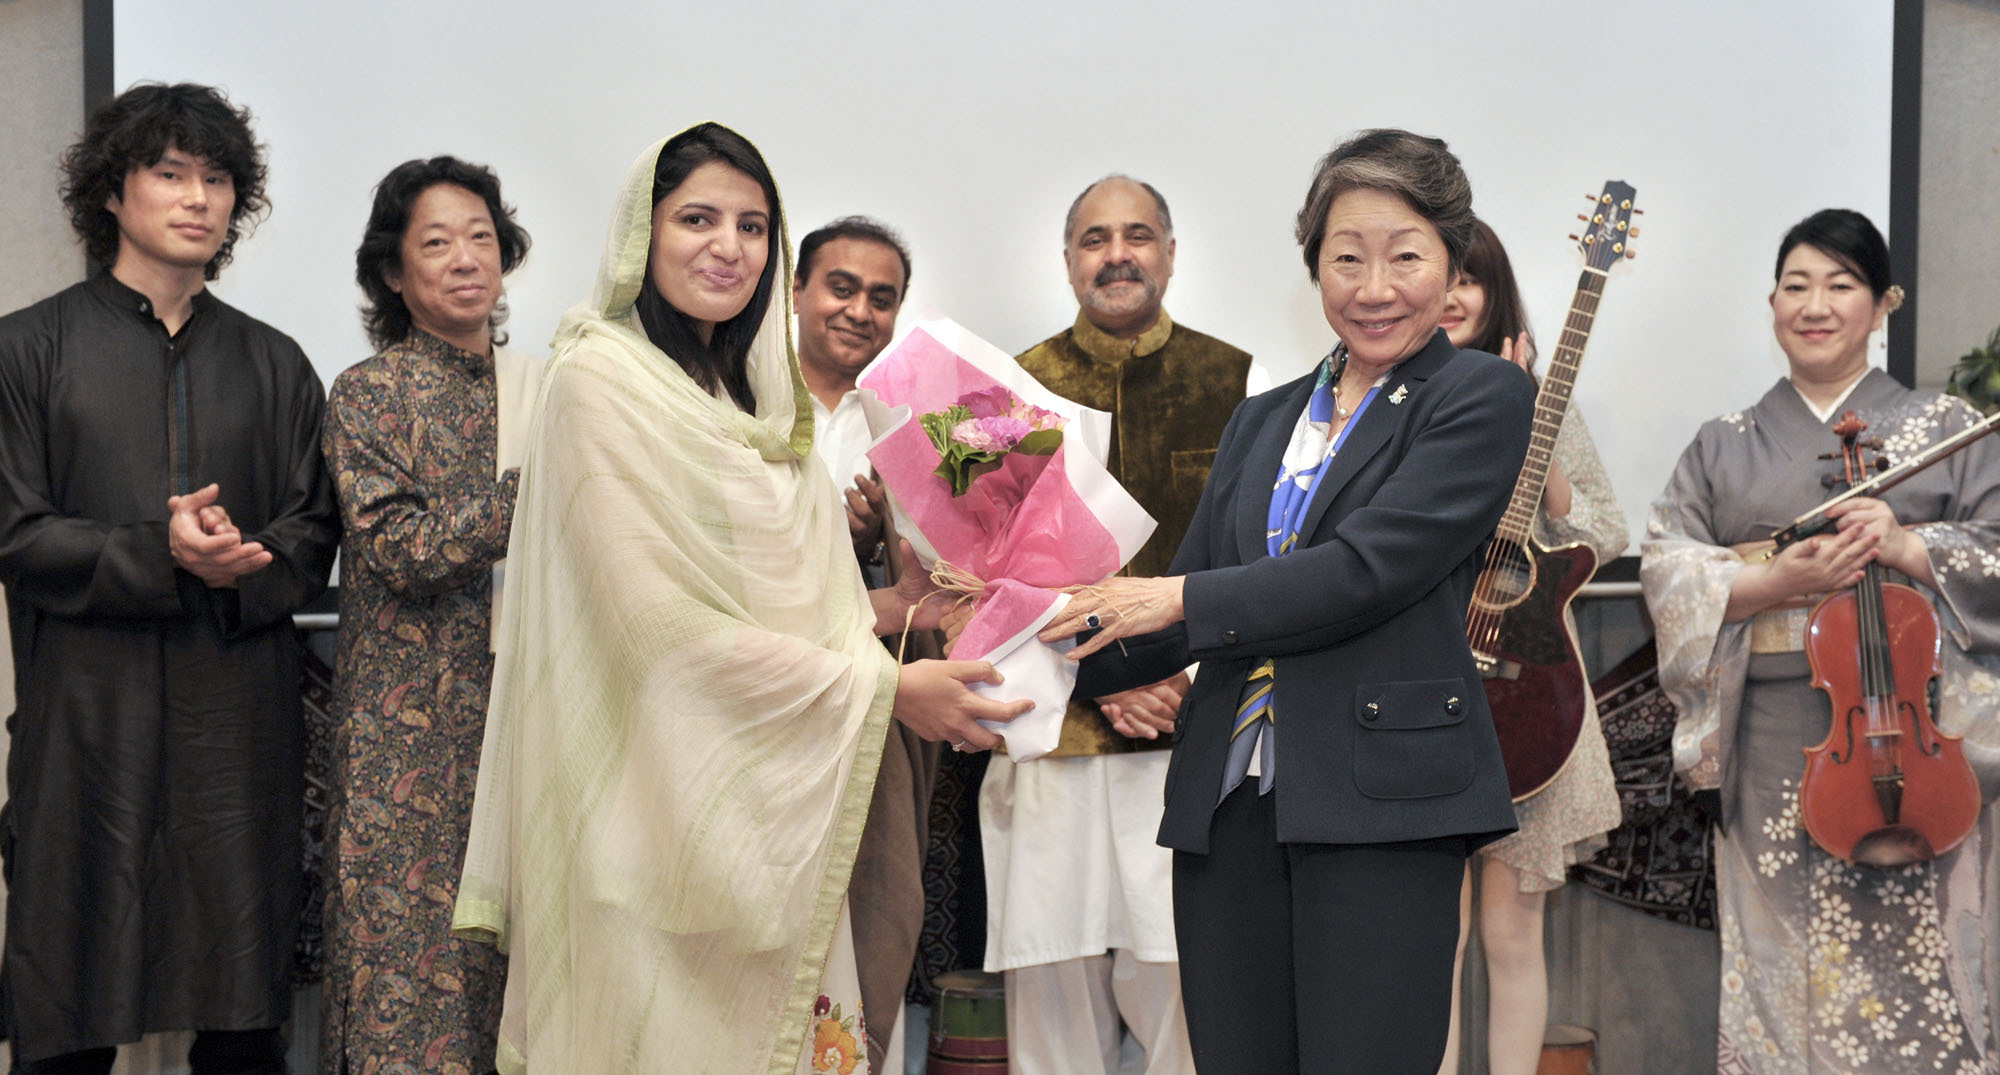 Zaib Malik (left), wife of Shehzad Ahmed Khan, commercial counsellor of the Pakistan Embassy, receives a bouquet from Haruko Komura, president of the Asia-Pacific Ladies Friendship Society (ALFS), on April 28, during the society's Spring Cultural Event 2016 at the Pakistan Embassy. Standing to the left of Komura is Farukh Amil, ambassador of the Islamic Republic of Pakistan. | YOSHIAKI MIURA